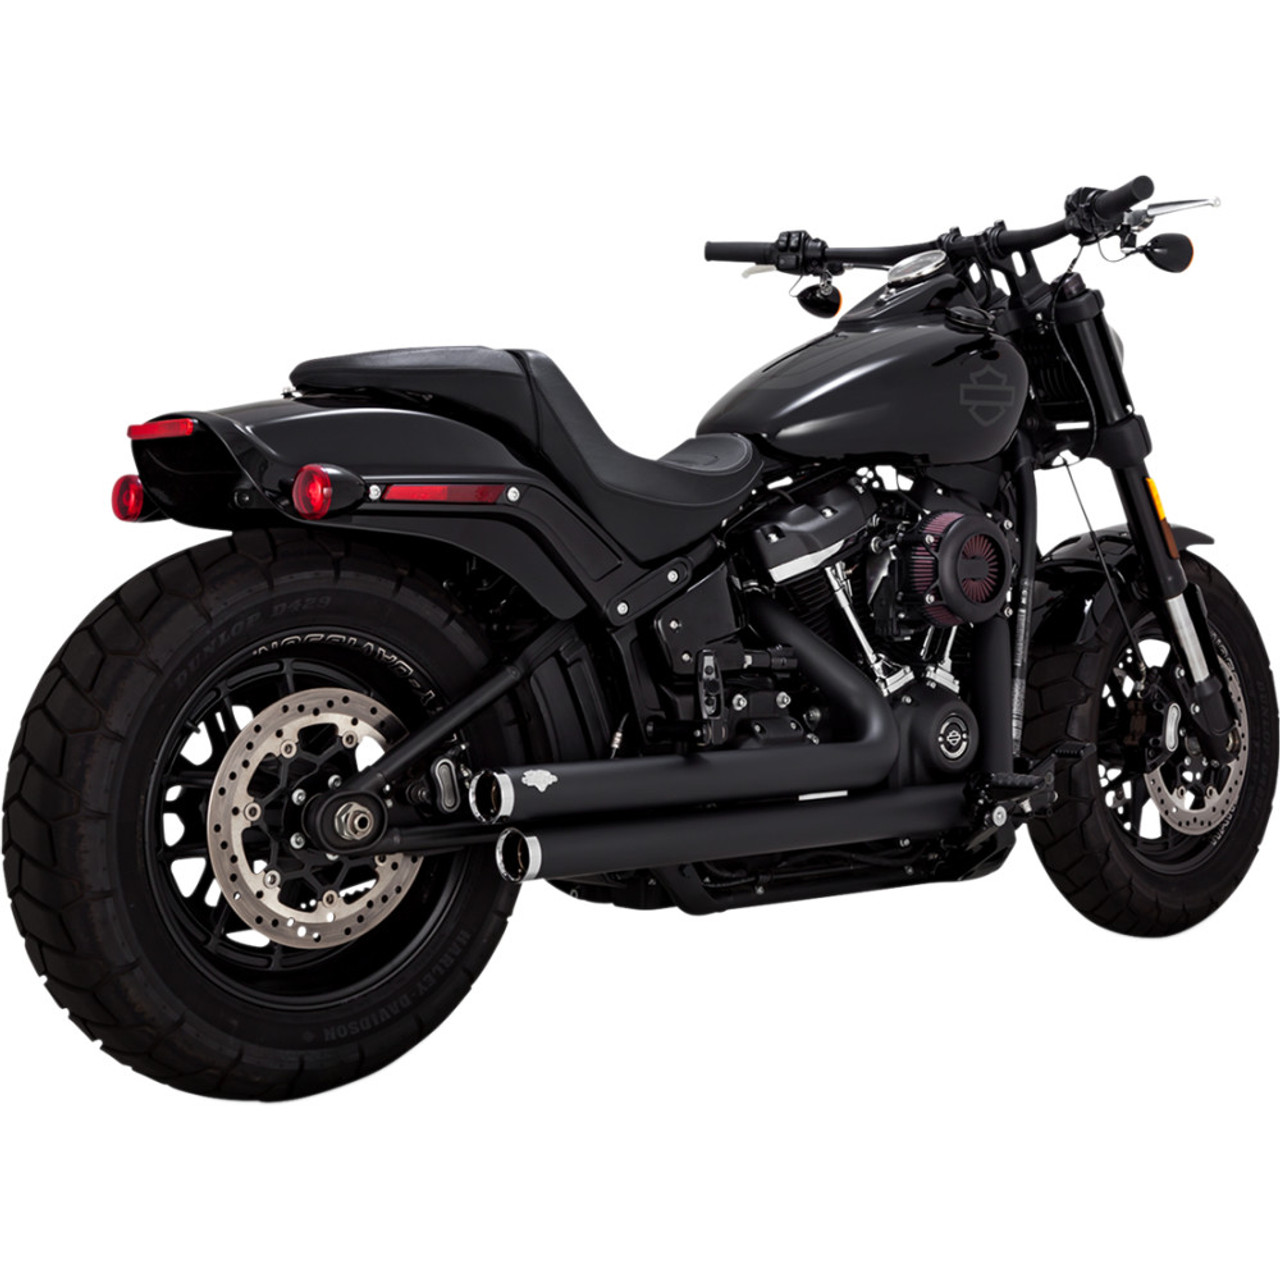 Harley Softail Vance Hines Big Shots Staggered Exhaust For 2018 2019 Harley Softail Black